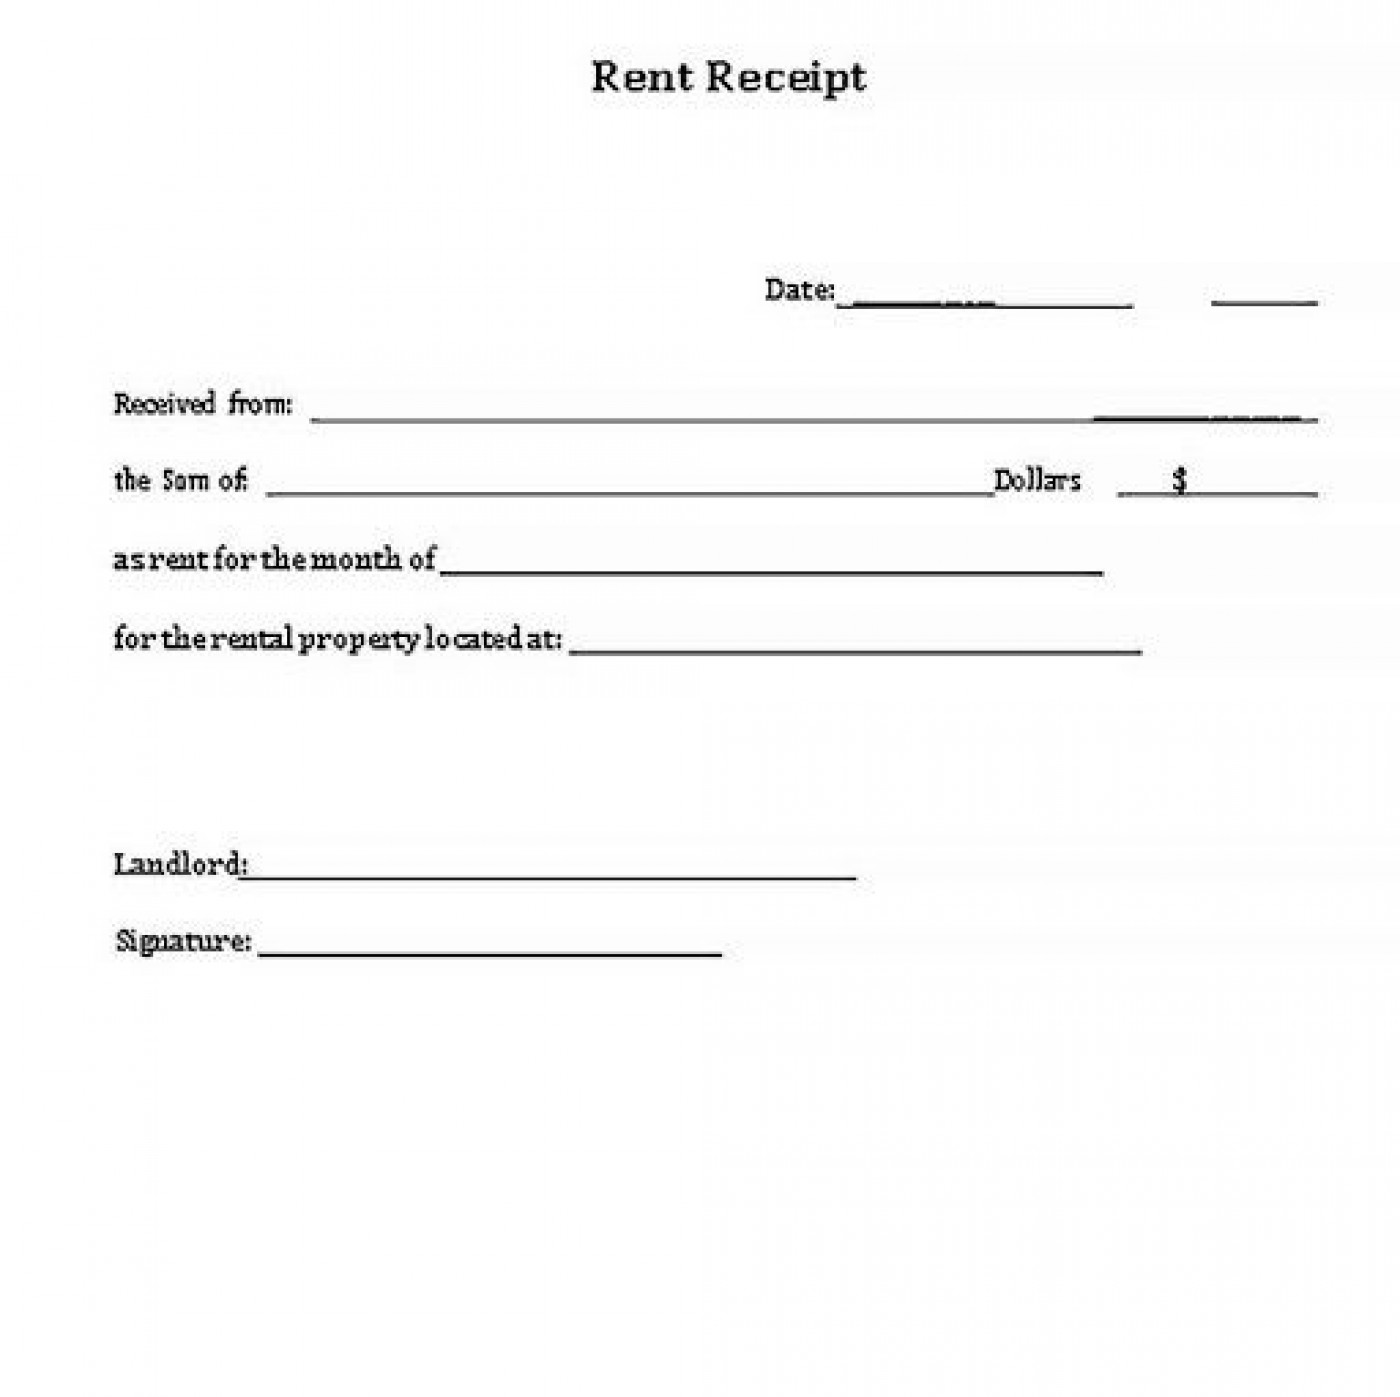 001 Stupendou Rent Receipt Sample Doc Highest Quality  Template India House Format Free Download1400